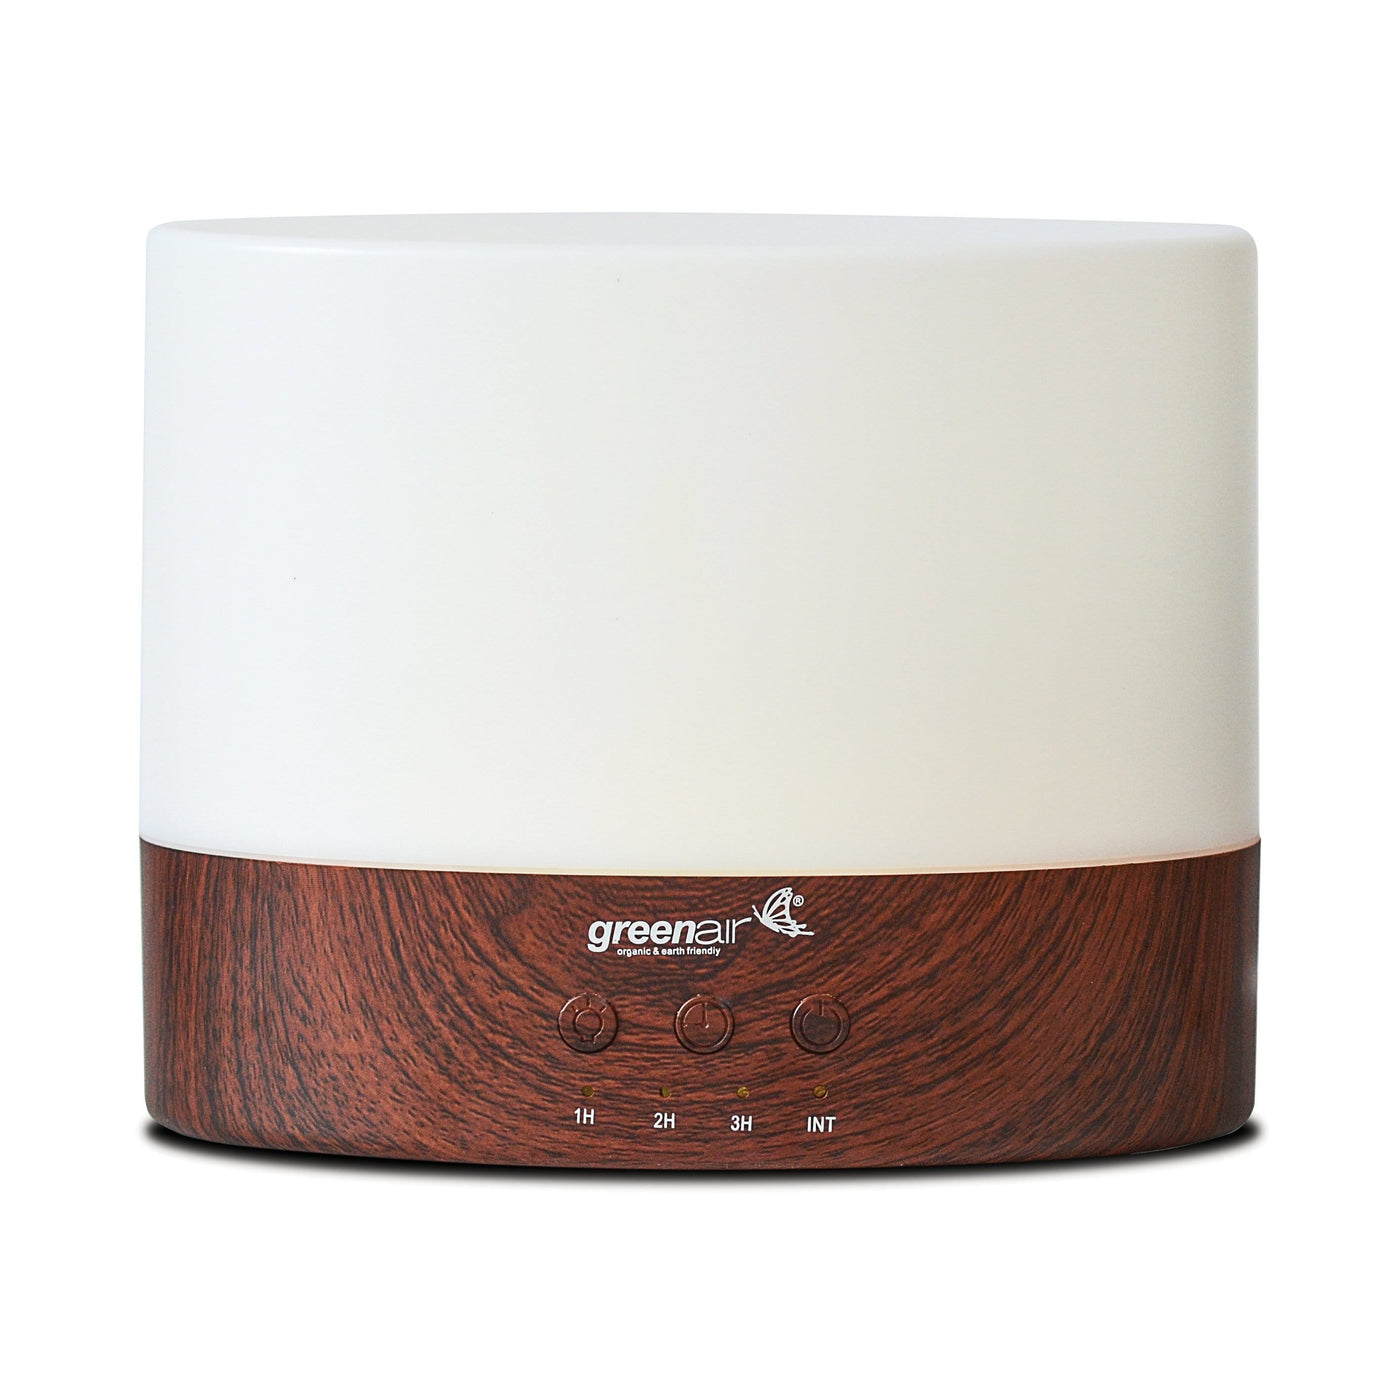 GreenAir Ellipse Aromatherapy Diffuser-Diffusers-Ice 'N' Fire